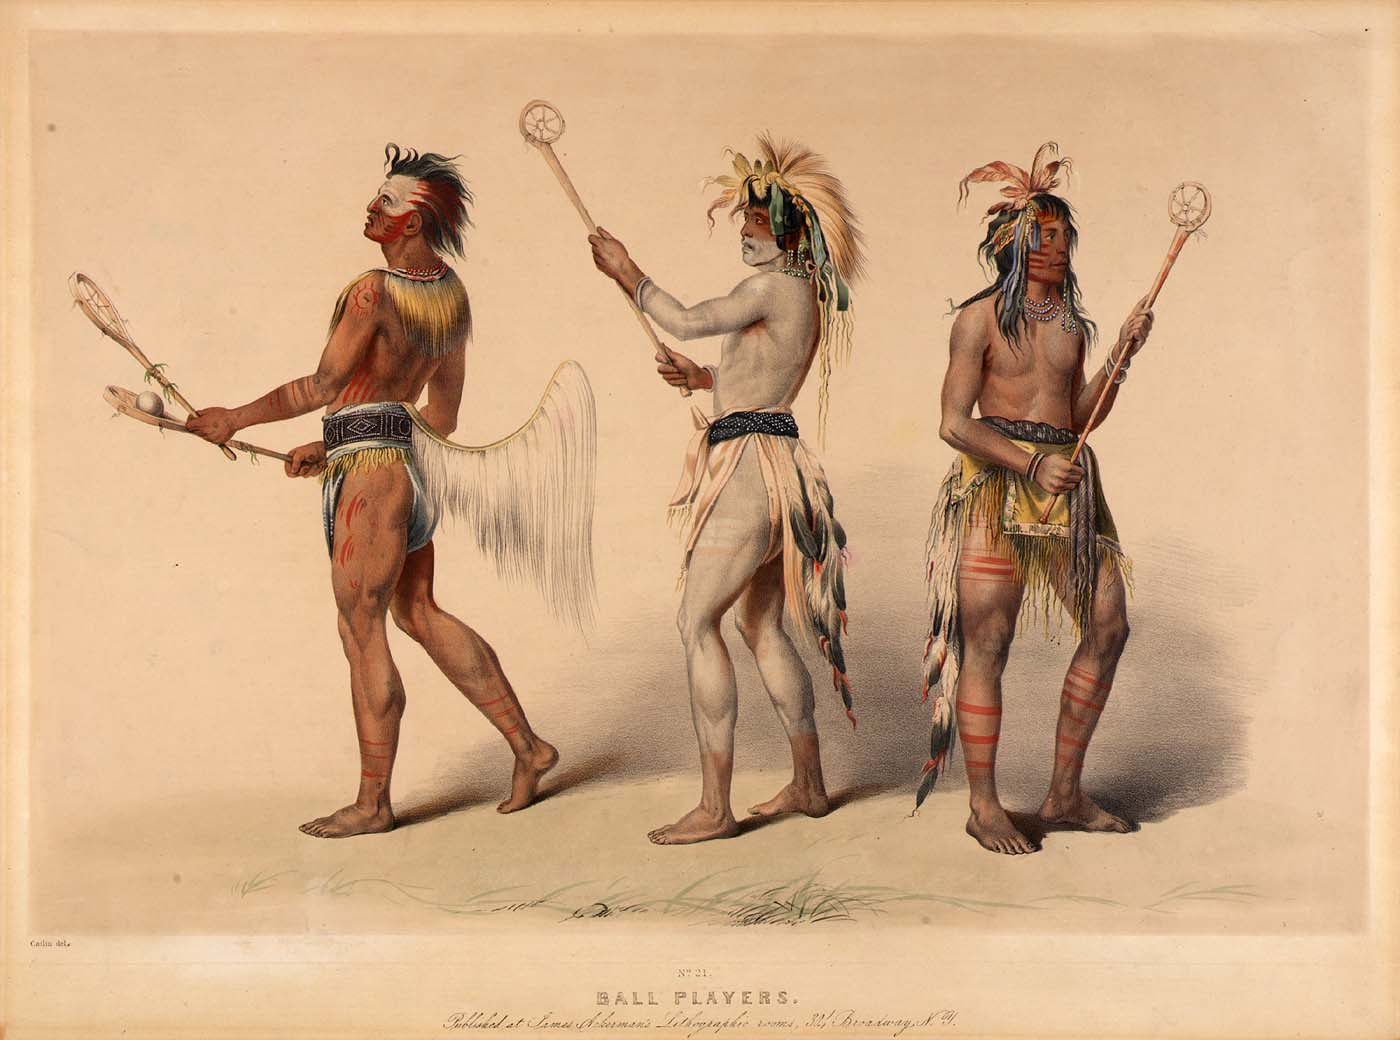 Ball players from theChoctaw andLakota tribe as painted byGeorge Catlin in the 1830s